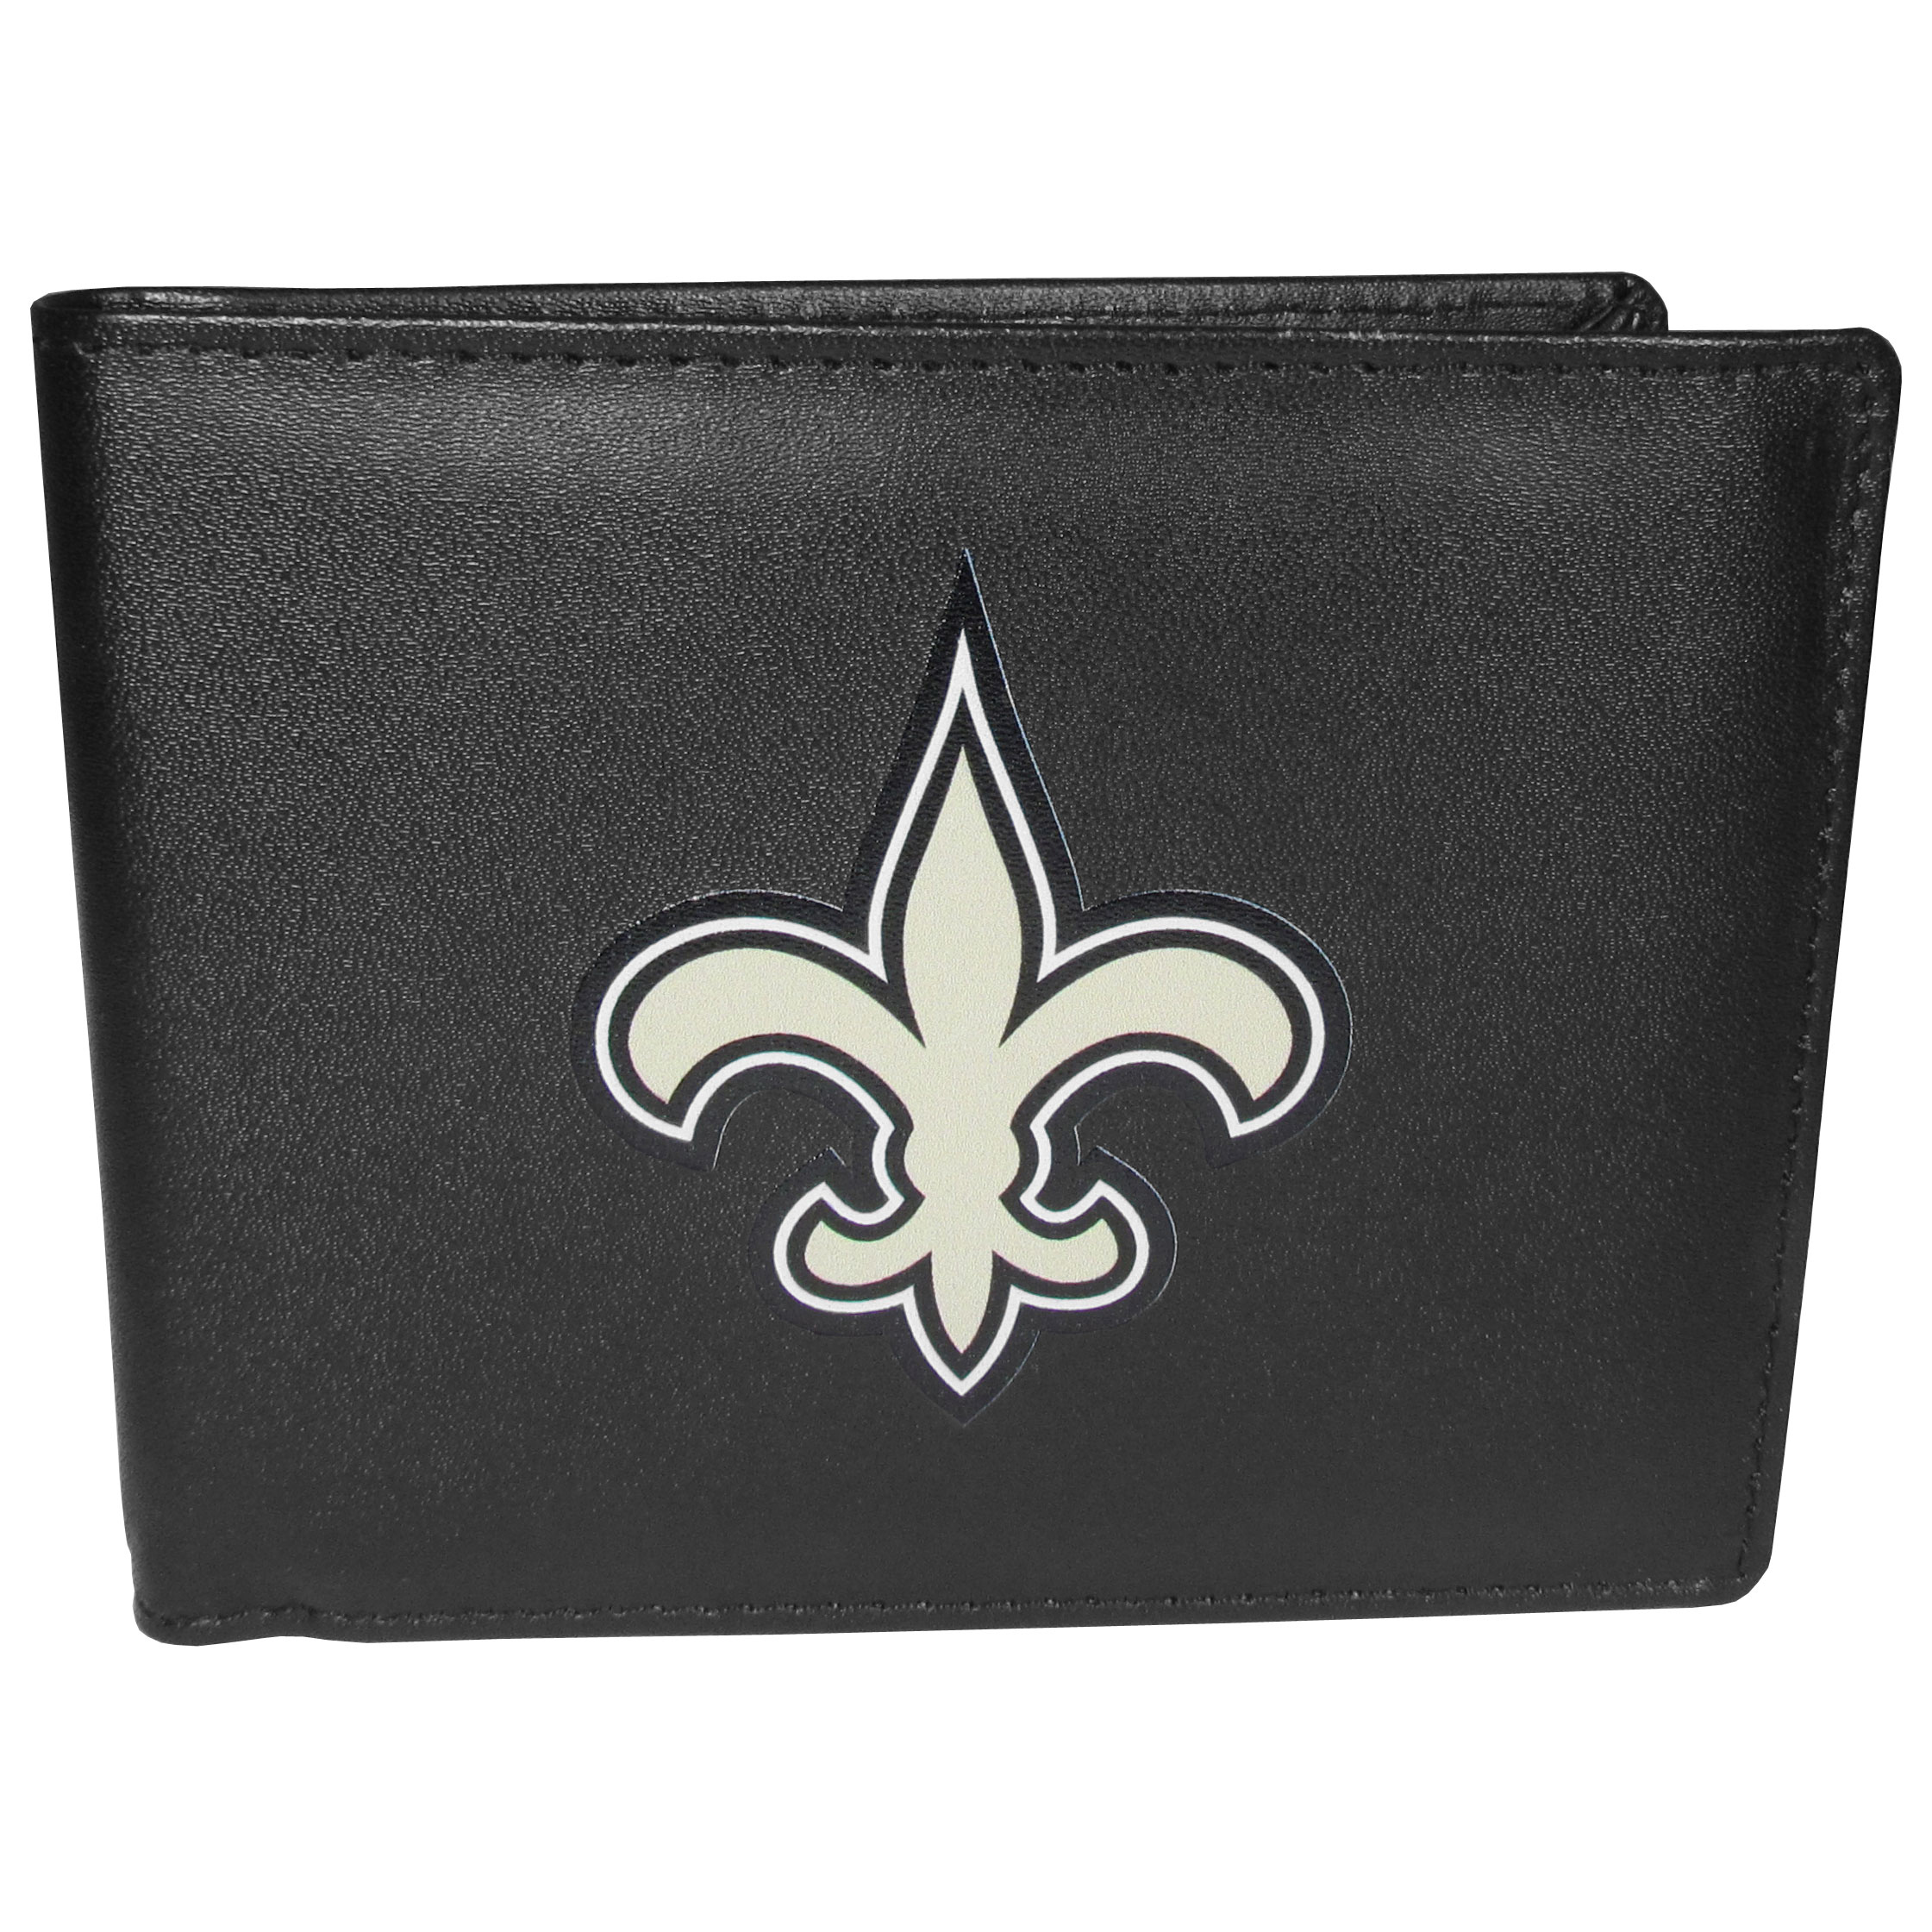 New Orleans Saints Leather Bi-fold Wallet, Large Logo - Our classic fine leather bi-fold wallet is meticulously crafted with genuine leather that will age beautifully so you will have a quality wallet for years to come. The wallet opens to a large, billfold pocket and numerous credit card slots and has a convenient windowed ID slot. The front of the wallet features an extra large New Orleans Saints printed logo.